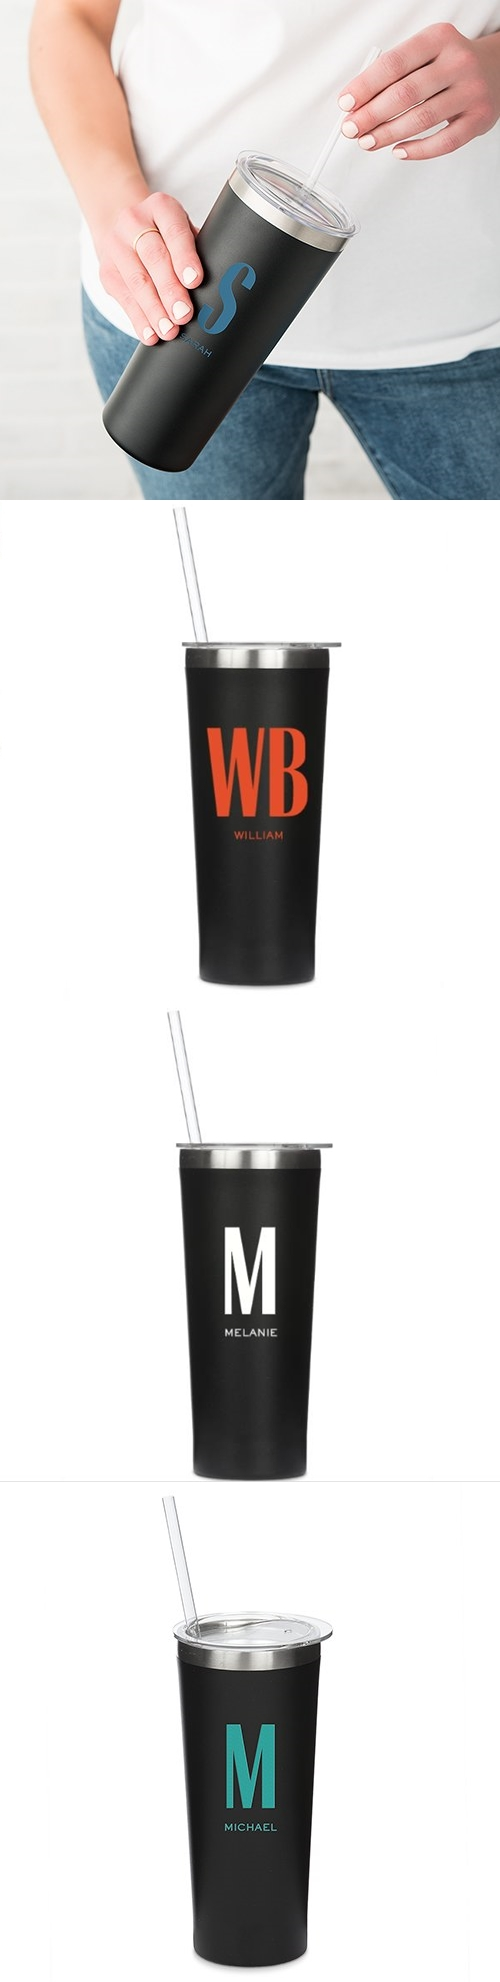 Black-Finish Stainless-Steel Tumbler - Custom Monogram (4 Colors)